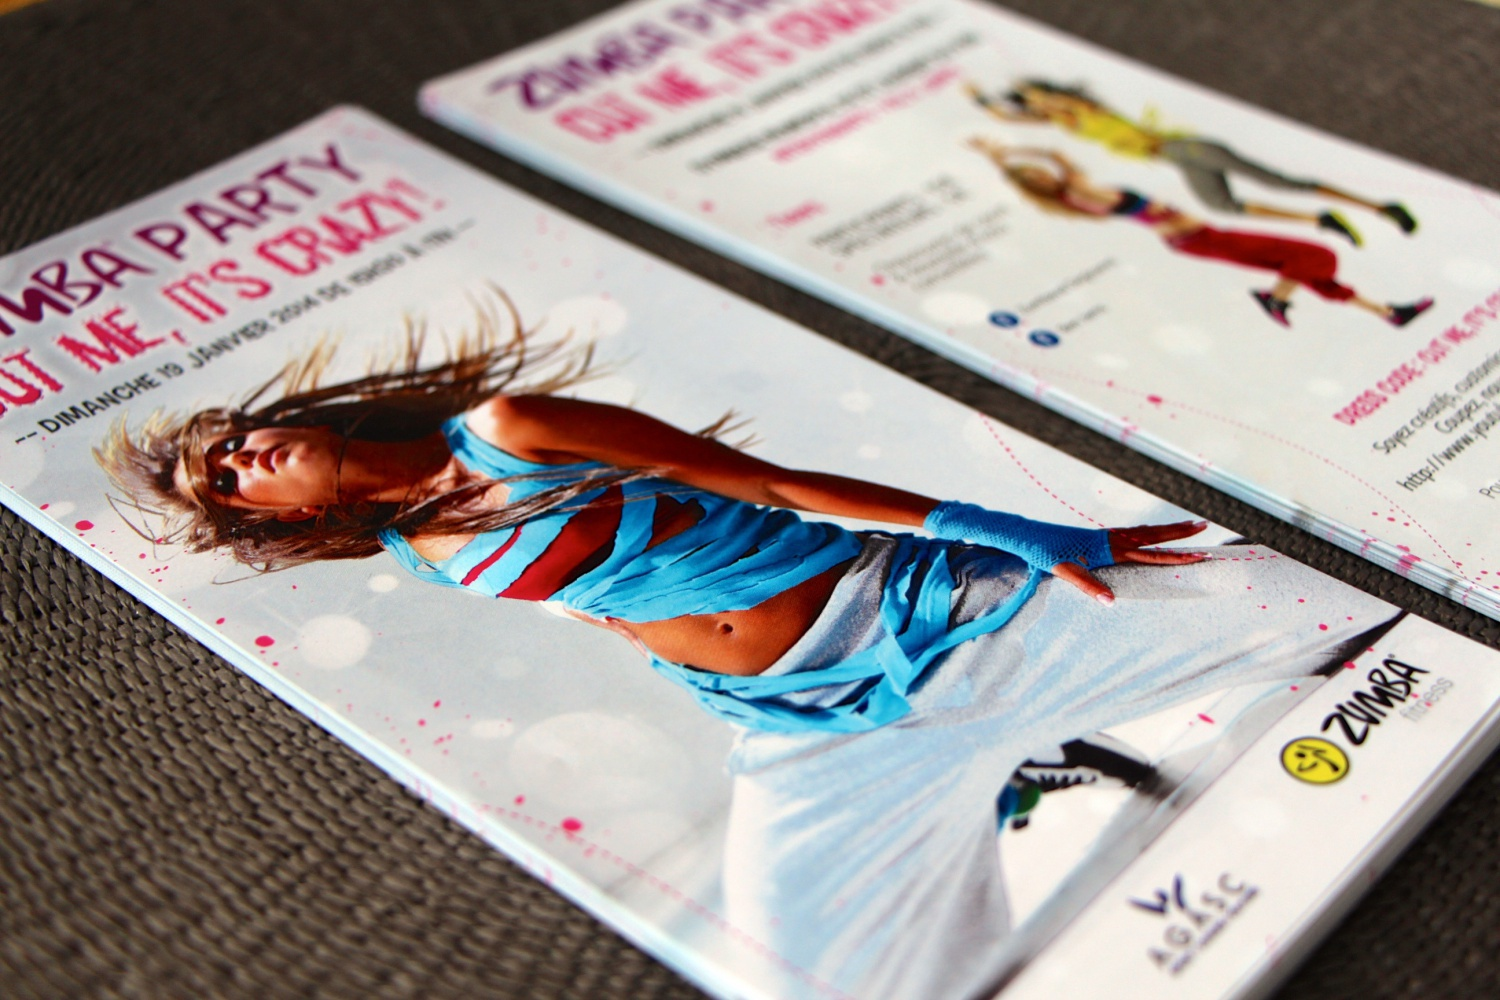 Zumba Party - Cut me, it's crazy